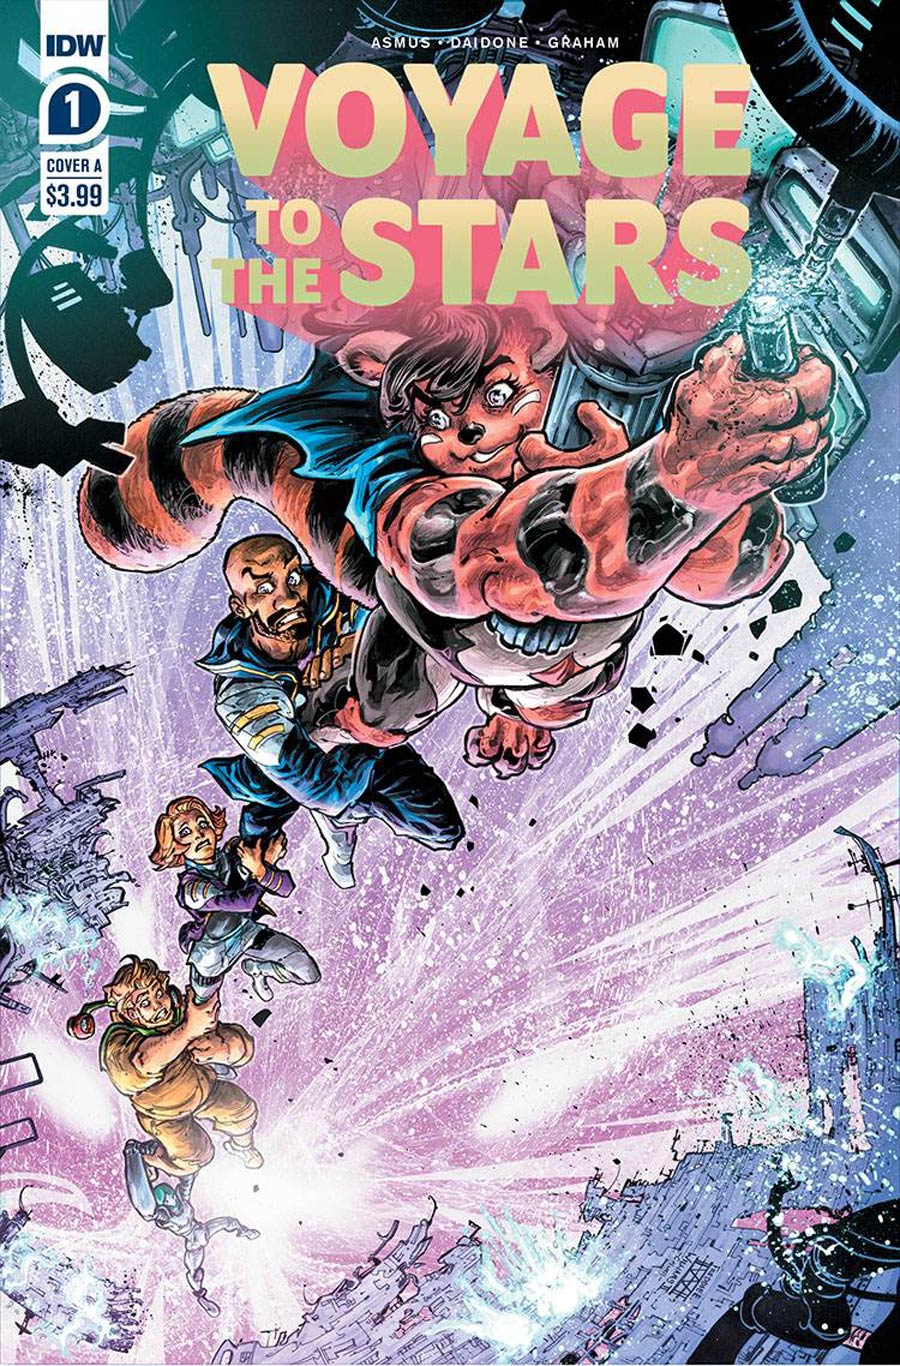 Voyage To The Stars #1 (2020)